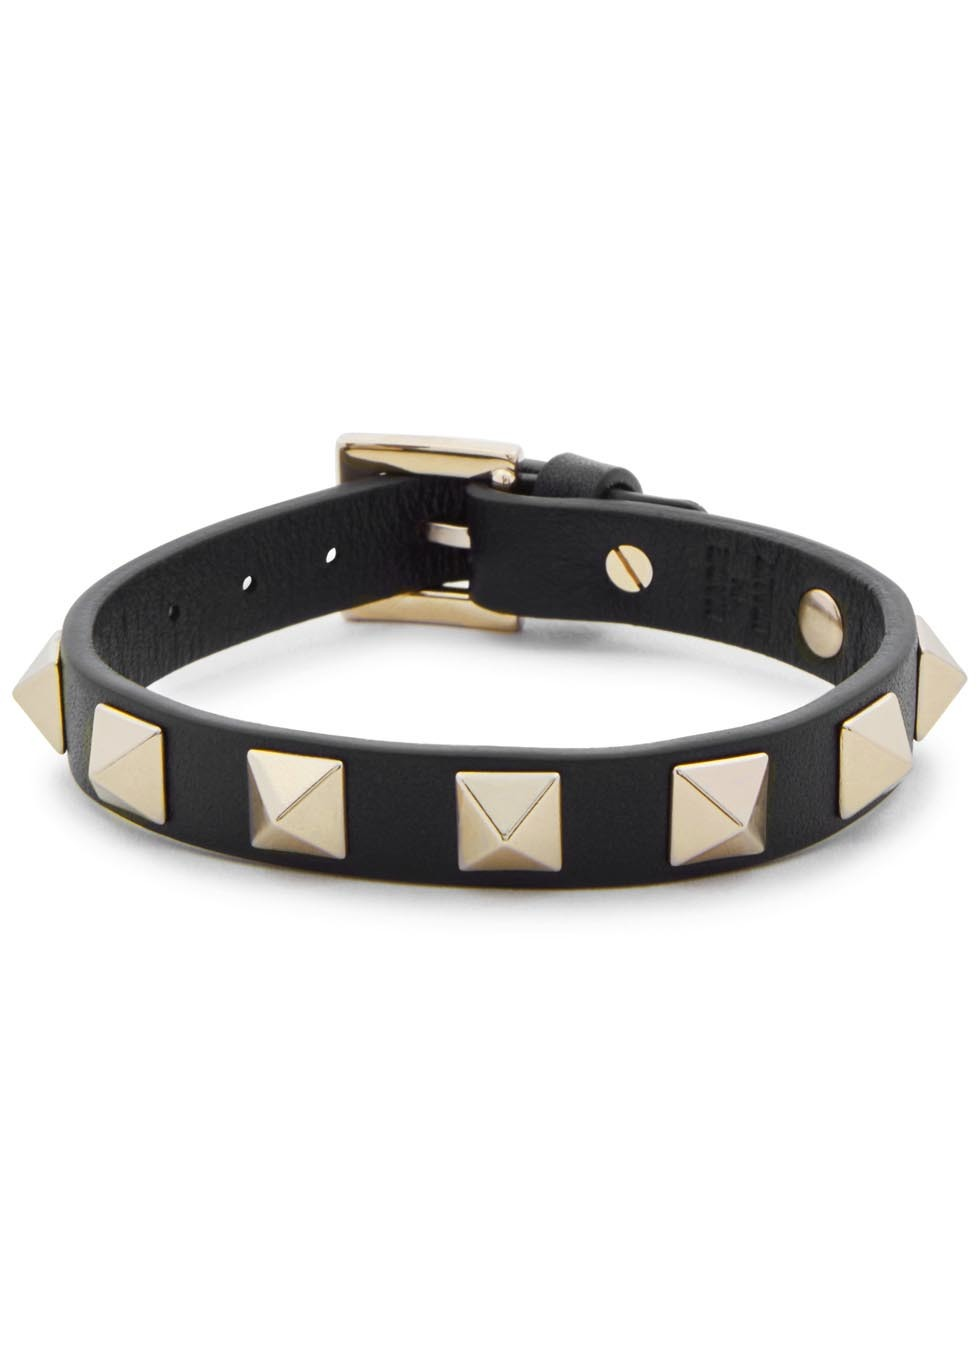 Rockstud Black Leather Bracelet - secondary colour: gold; predominant colour: black; occasions: casual, creative work; style: bangle/standard; size: standard; material: leather; finish: plain; embellishment: studs; season: s/s 2016; wardrobe: highlight